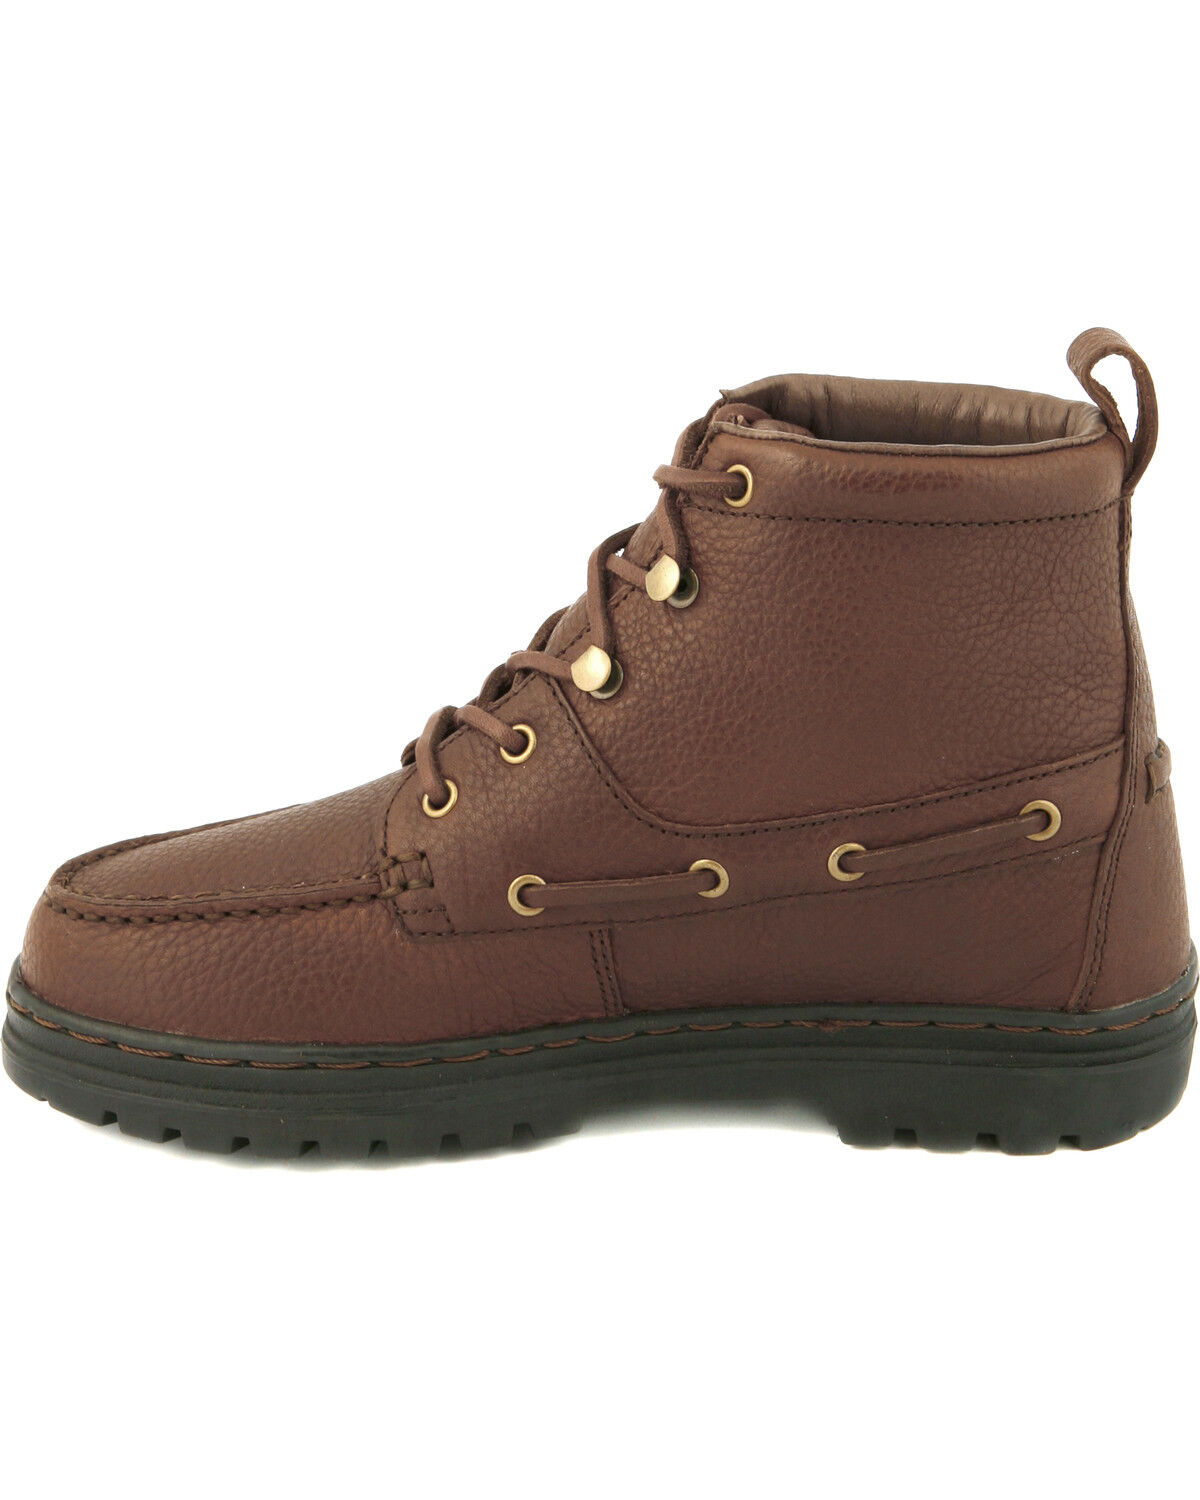 Chip Casual Lace-Up Boots | Boot Barn